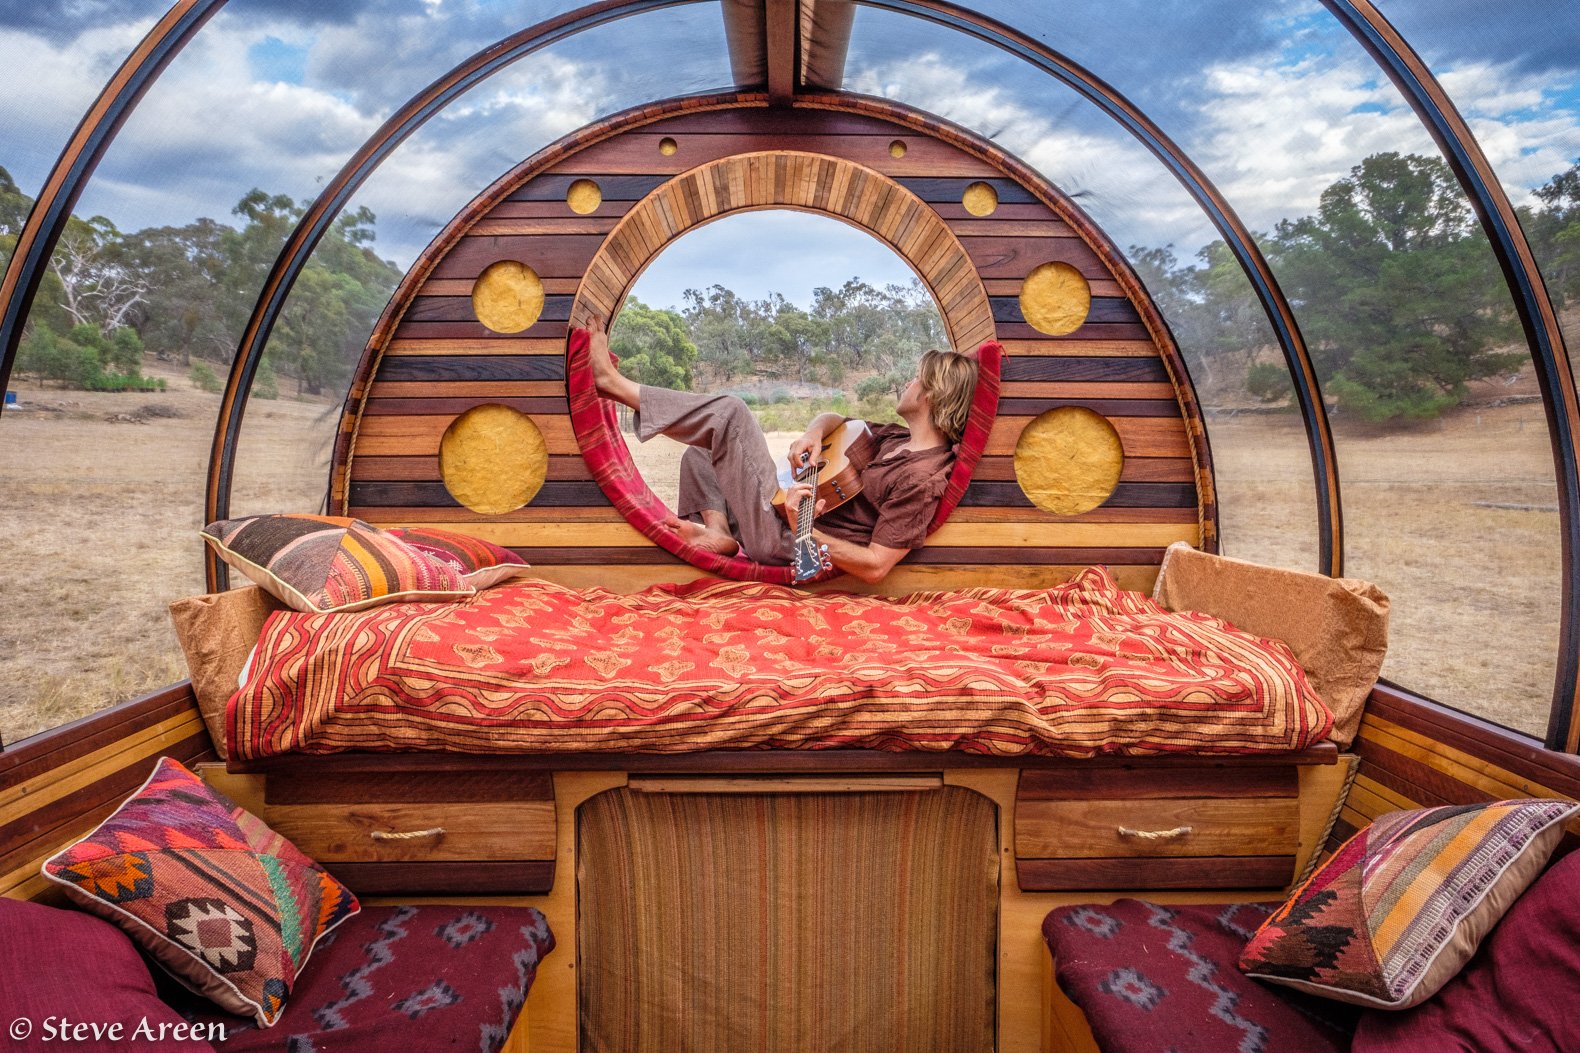 Steve Areen's incredible DIY wagon home built with mostly recycled materials